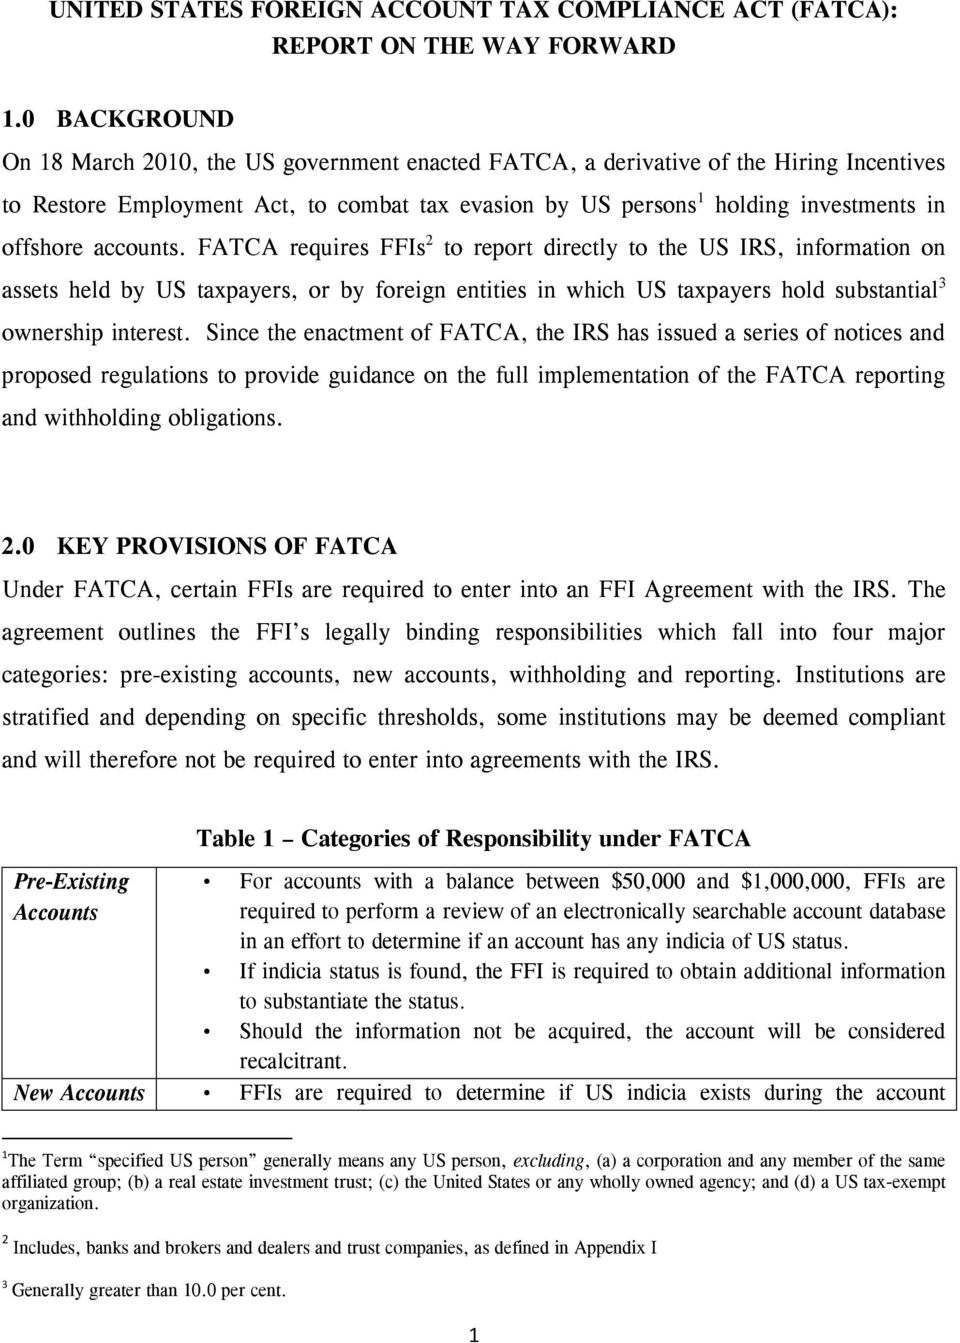 accounts. FATCA requires FFIs 2 to report directly to the US IRS, information on assets held by US taxpayers, or by foreign entities in which US taxpayers hold substantial 3 ownership interest.